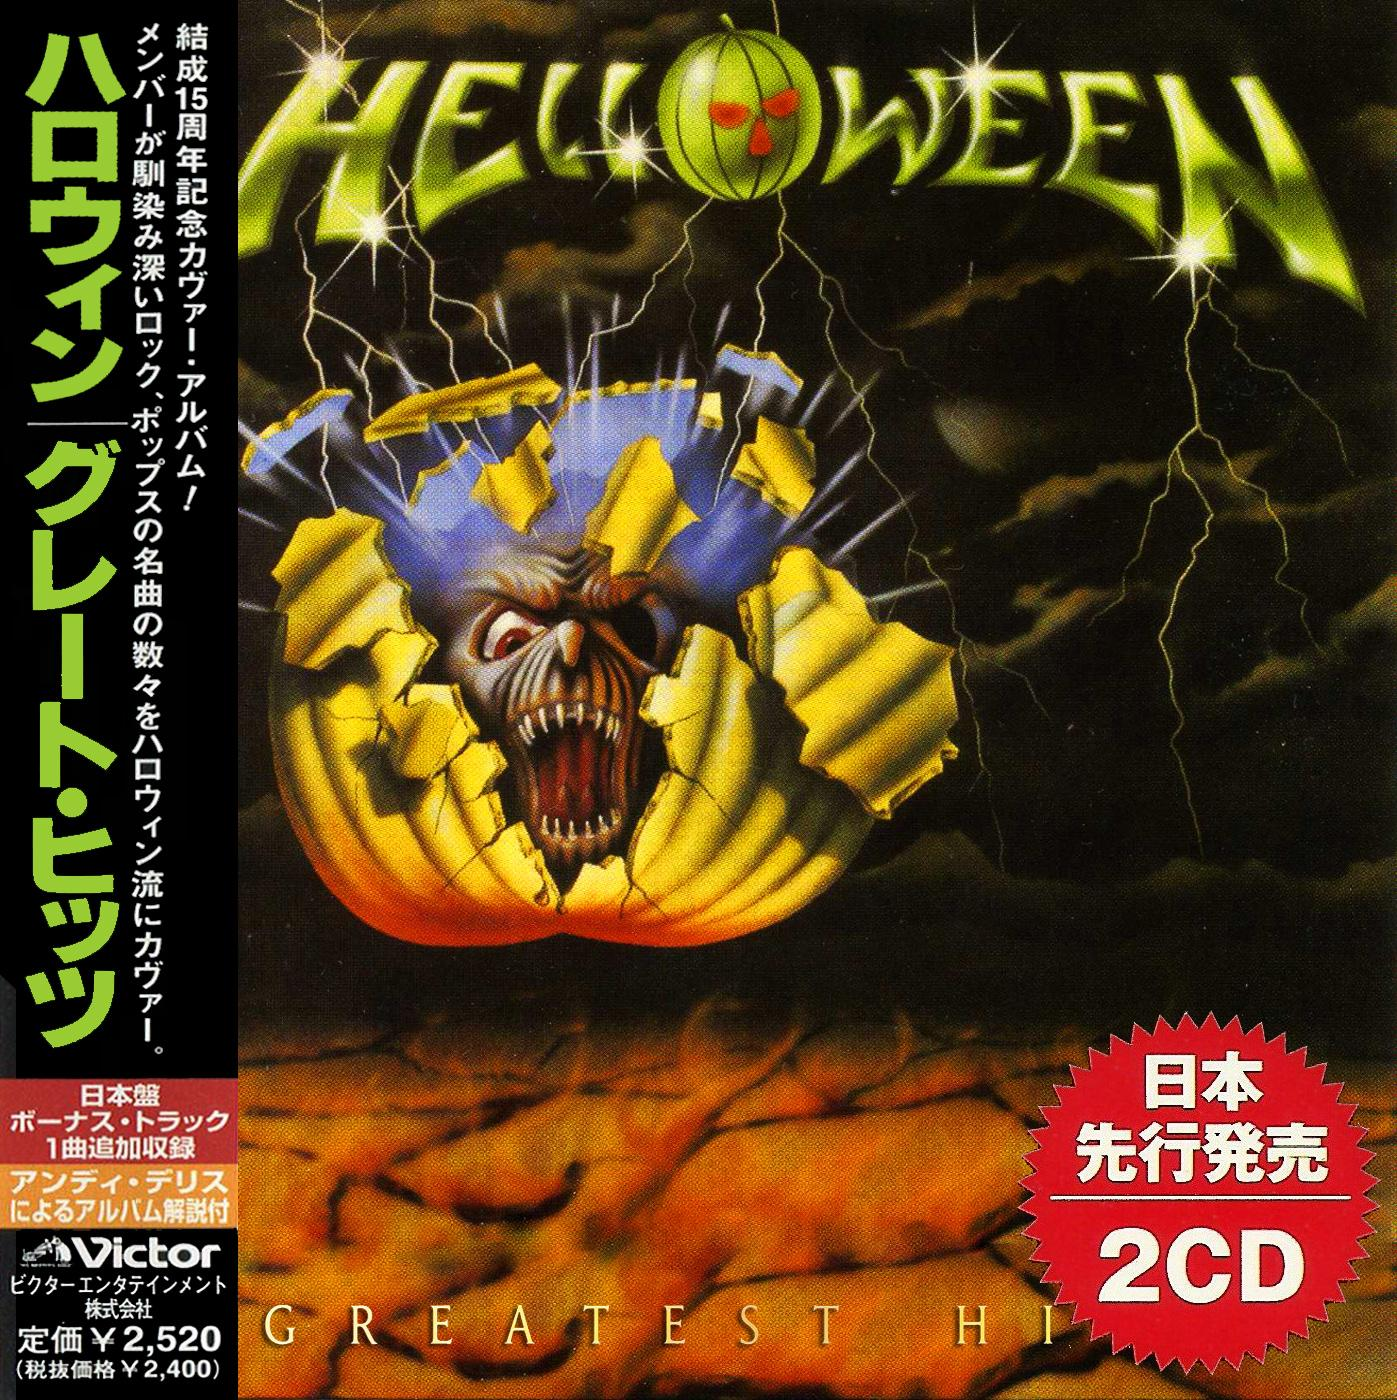 Helloween-Greatest Hits (2018 Japanese Edition)